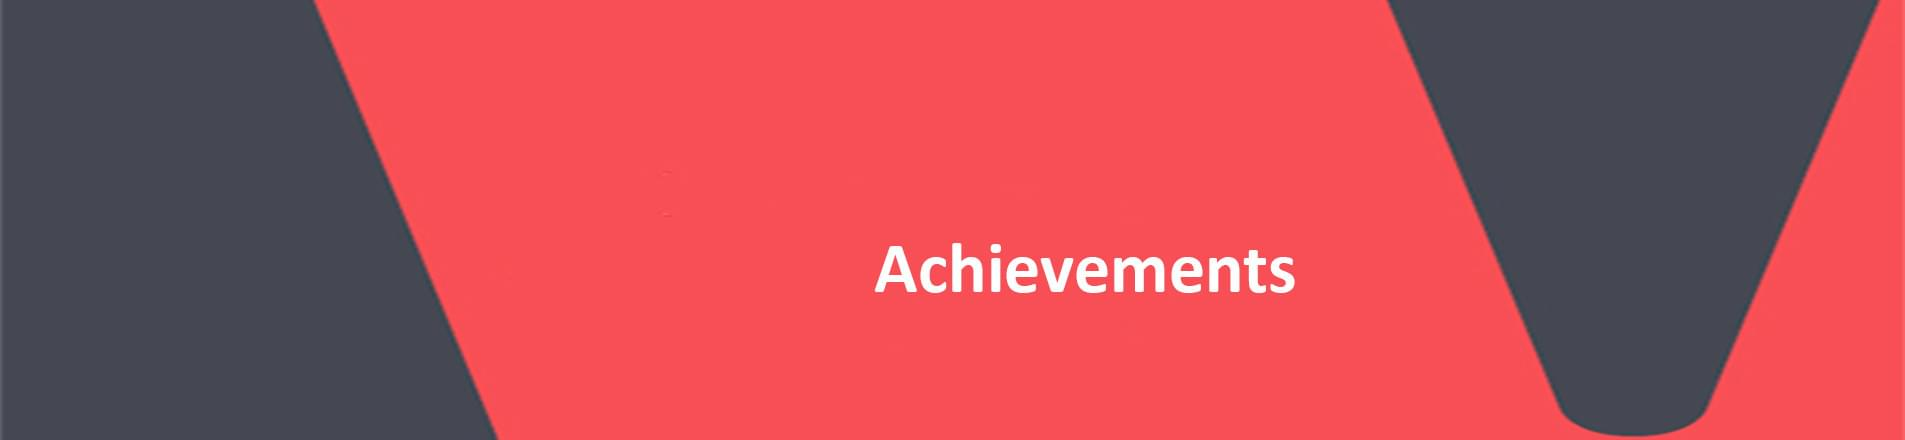 The word Achievements on red VERCIDA branded background.